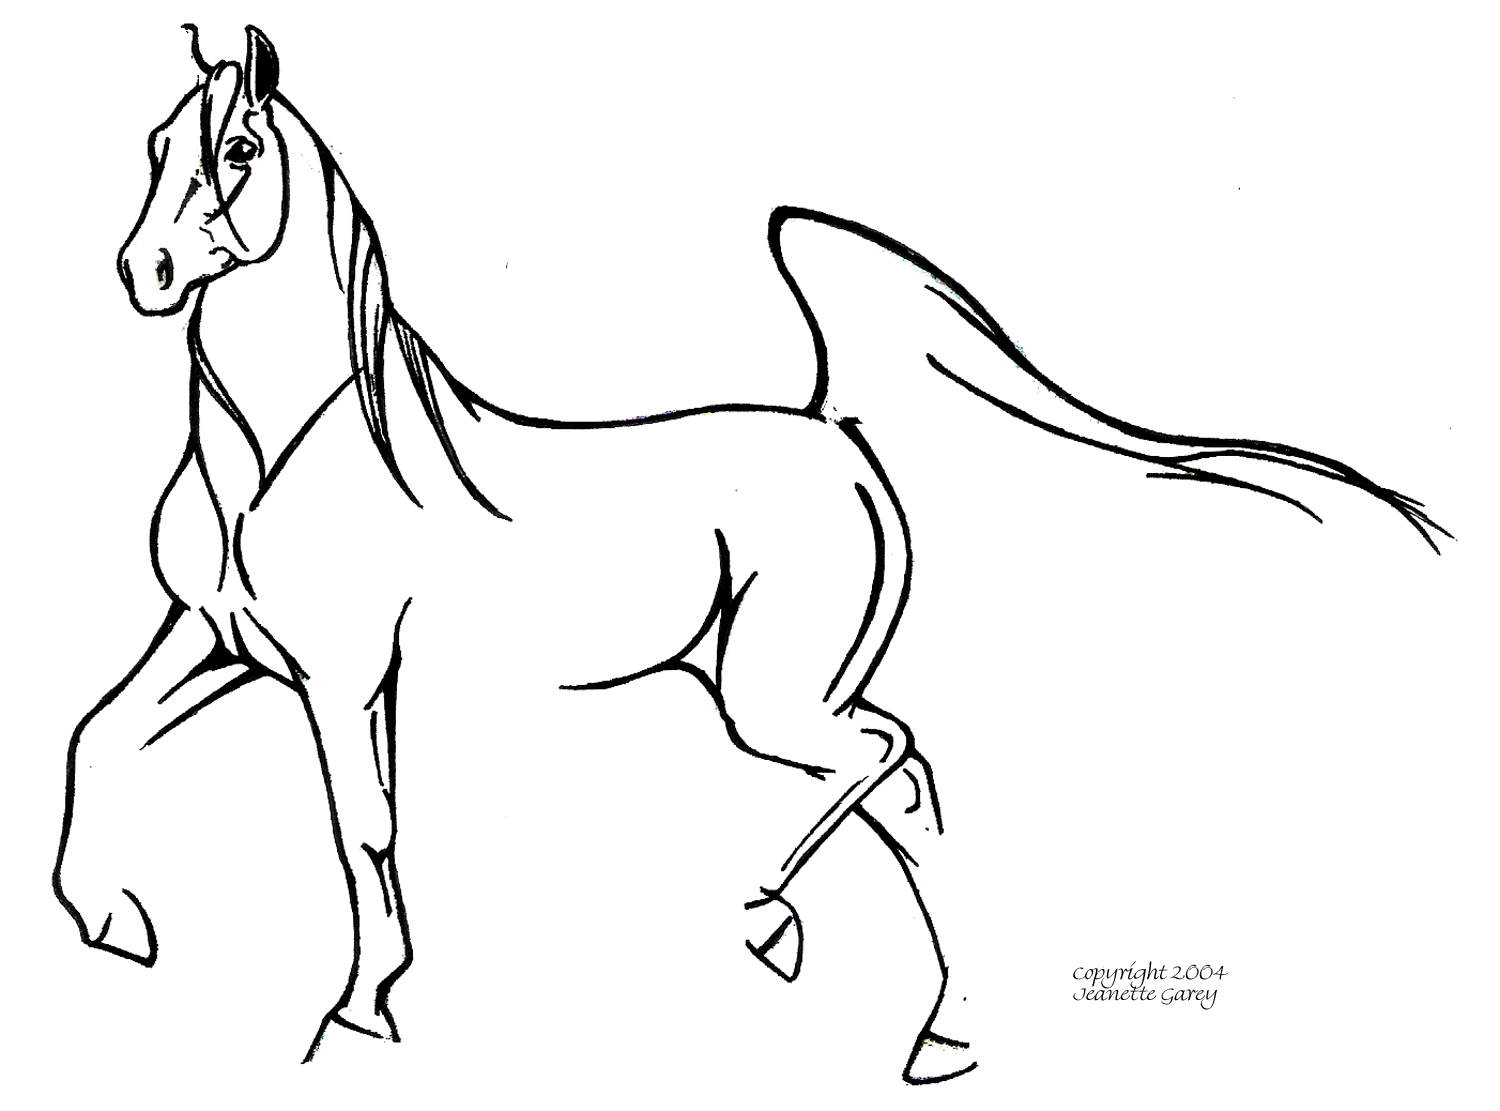 Line Drawing From Photo : Picasso line drawings horse pixshark images